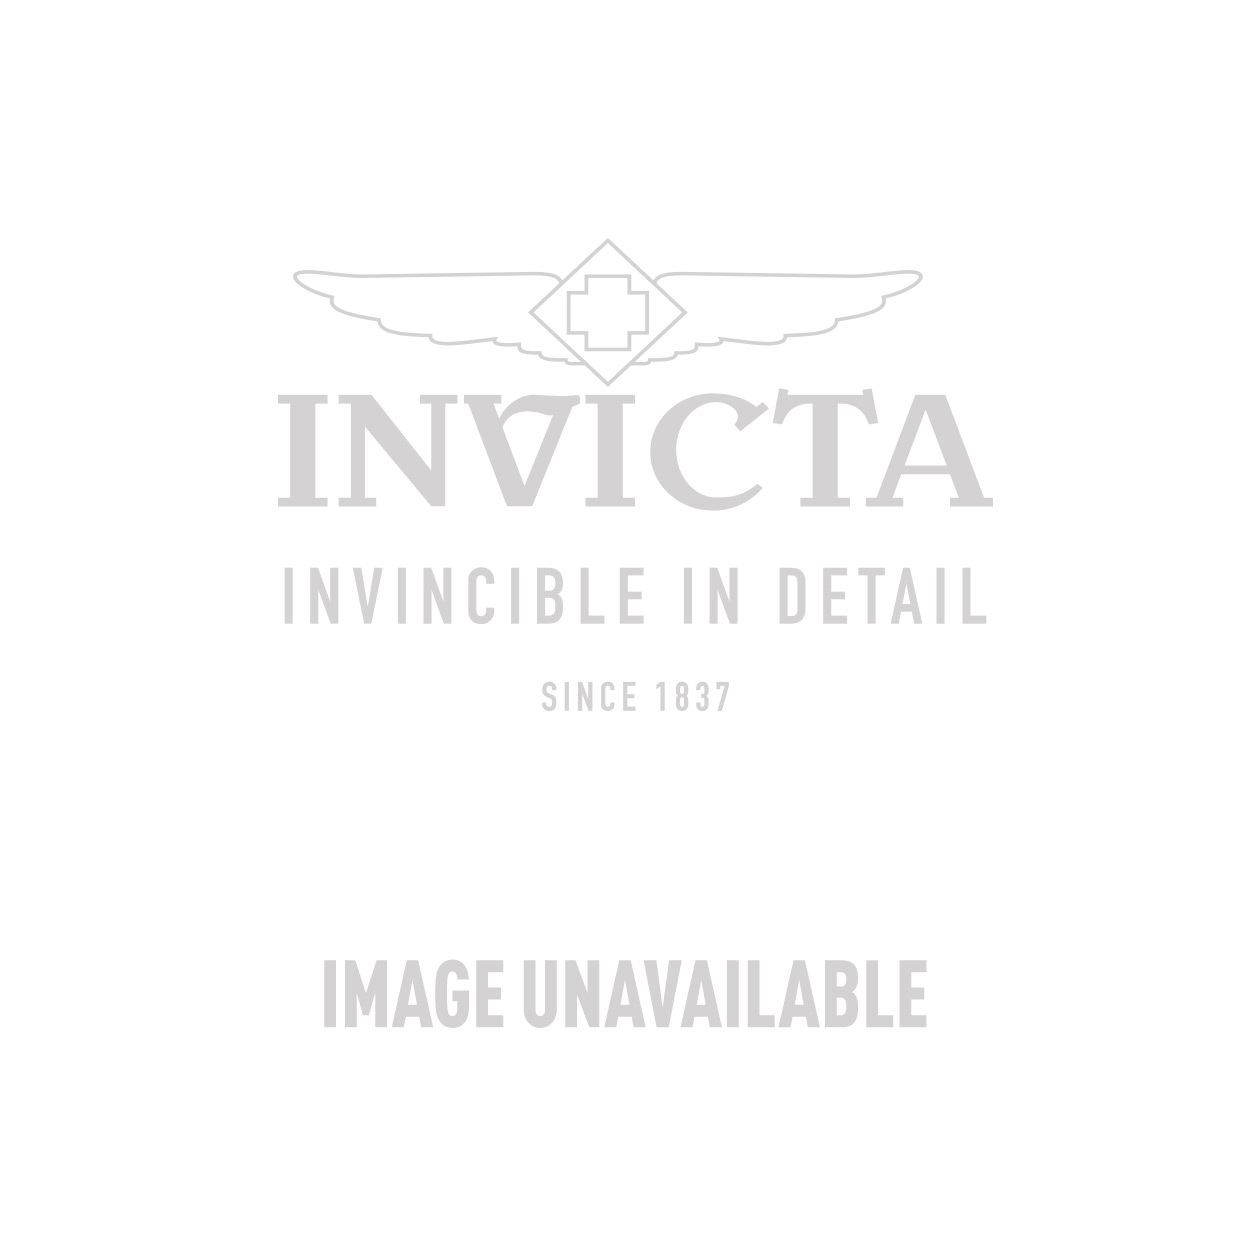 Invicta Angel Swiss Movement Quartz Watch - Gold, Stainless Steel case with Steel, Gold tone Stainless Steel band - Model 14364